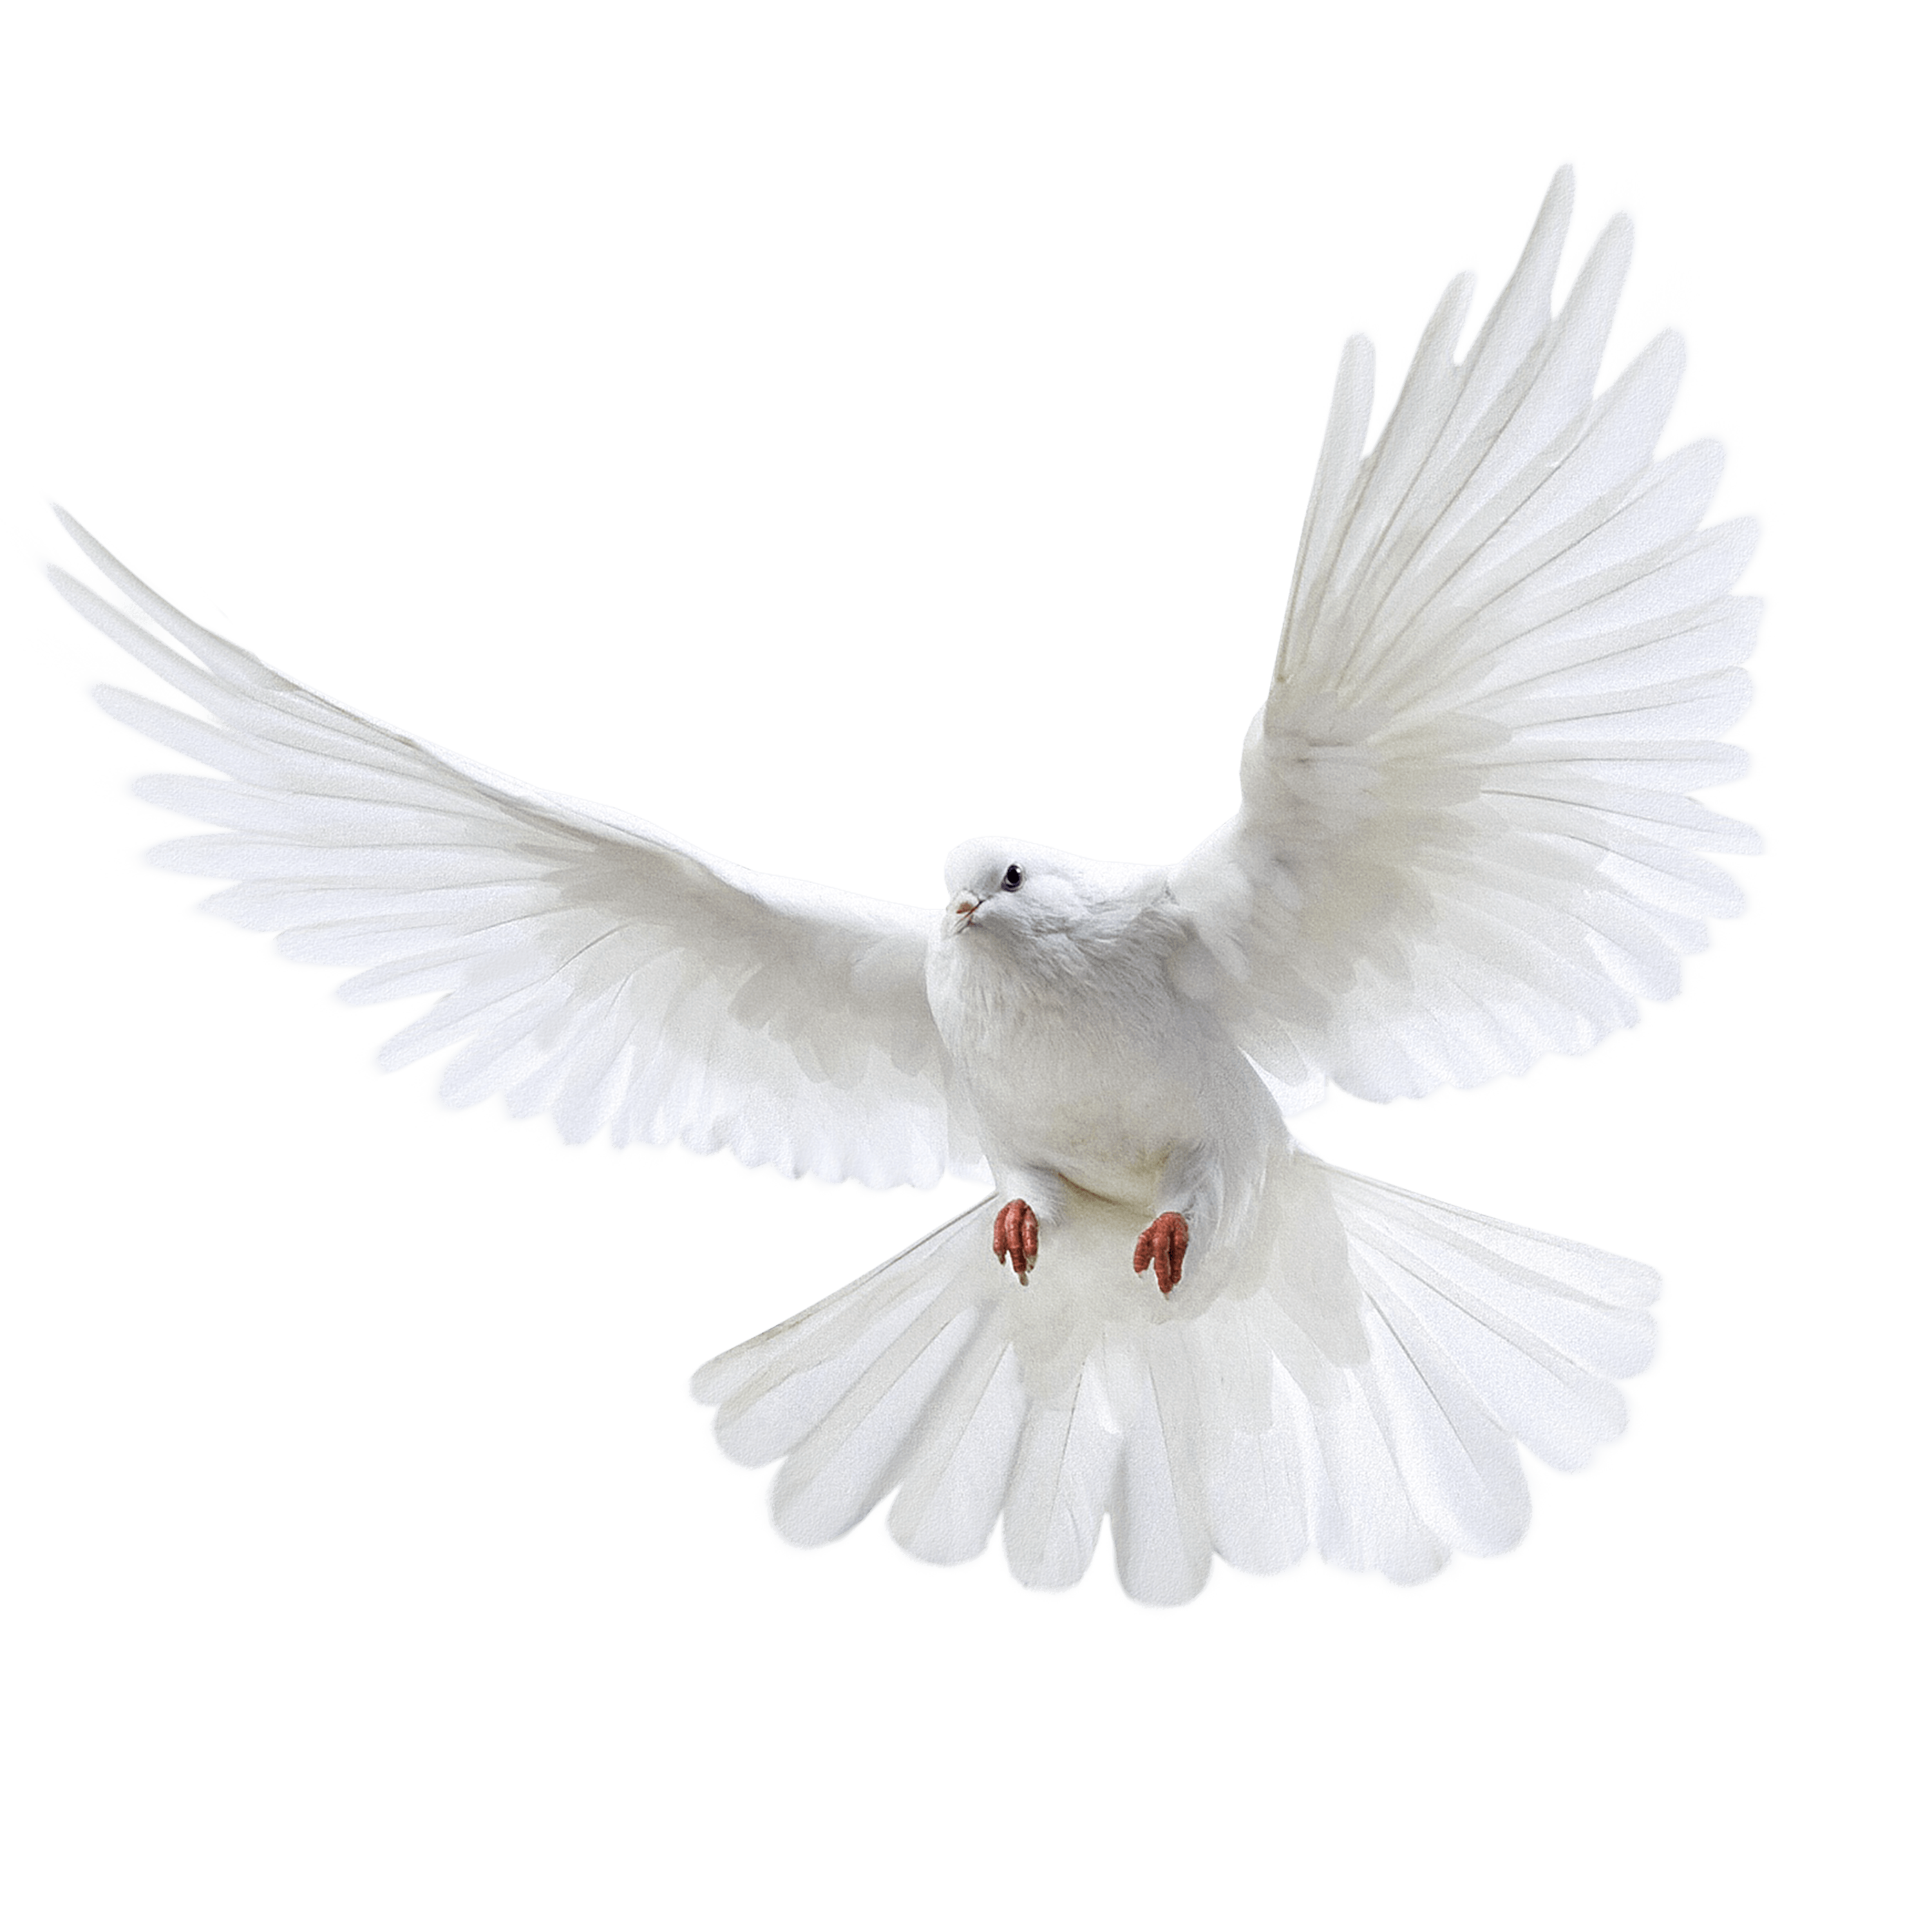 Doves flying png. White pigeon image draw